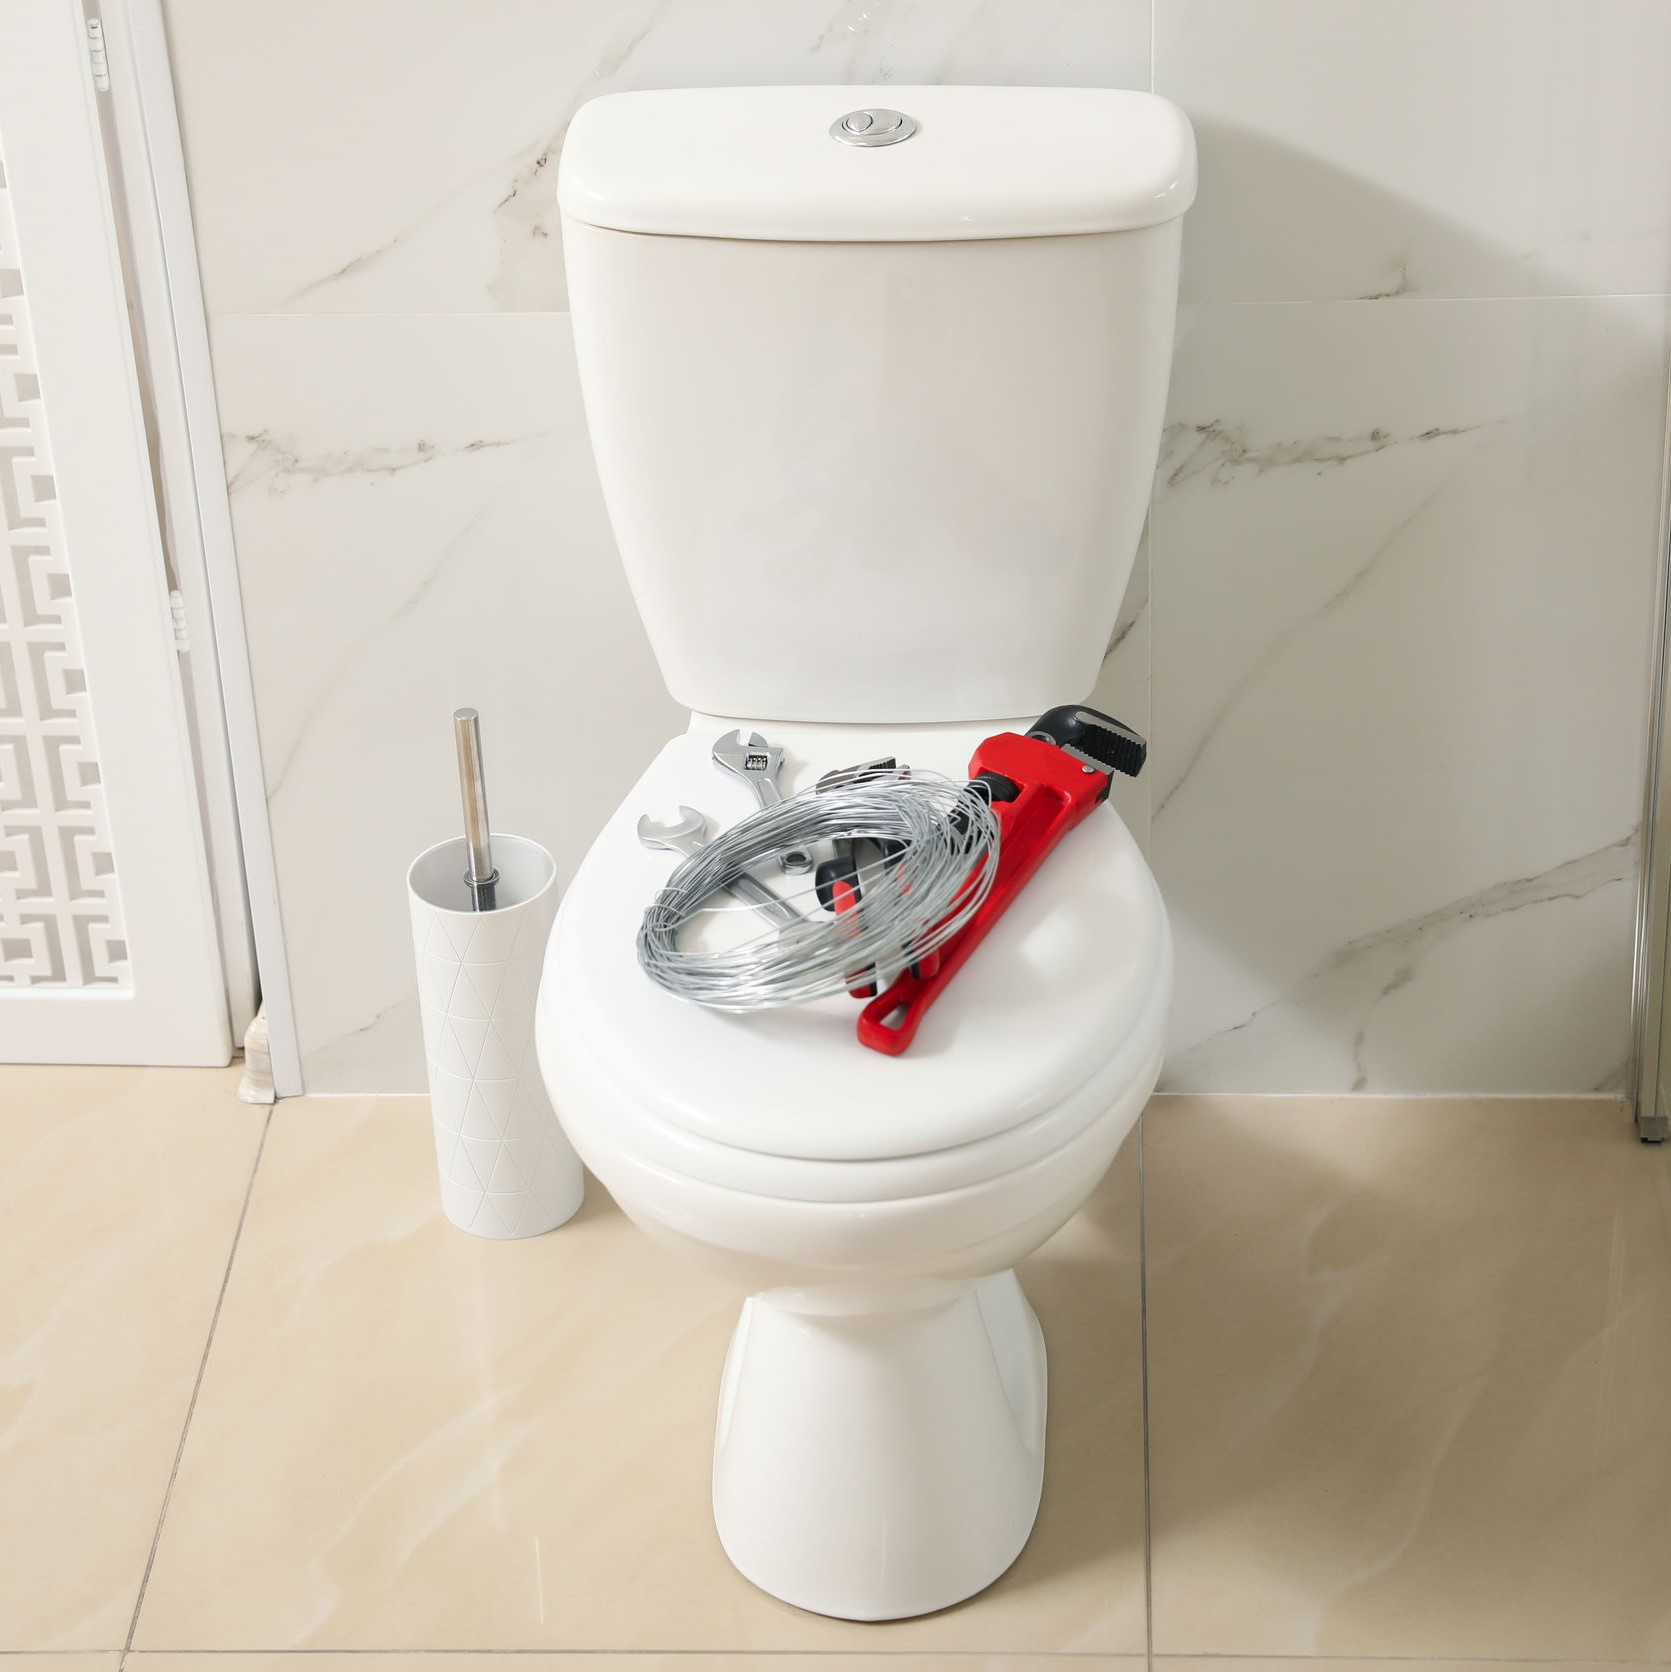 A toilet with tools on it designed to help with leaks and repairs.